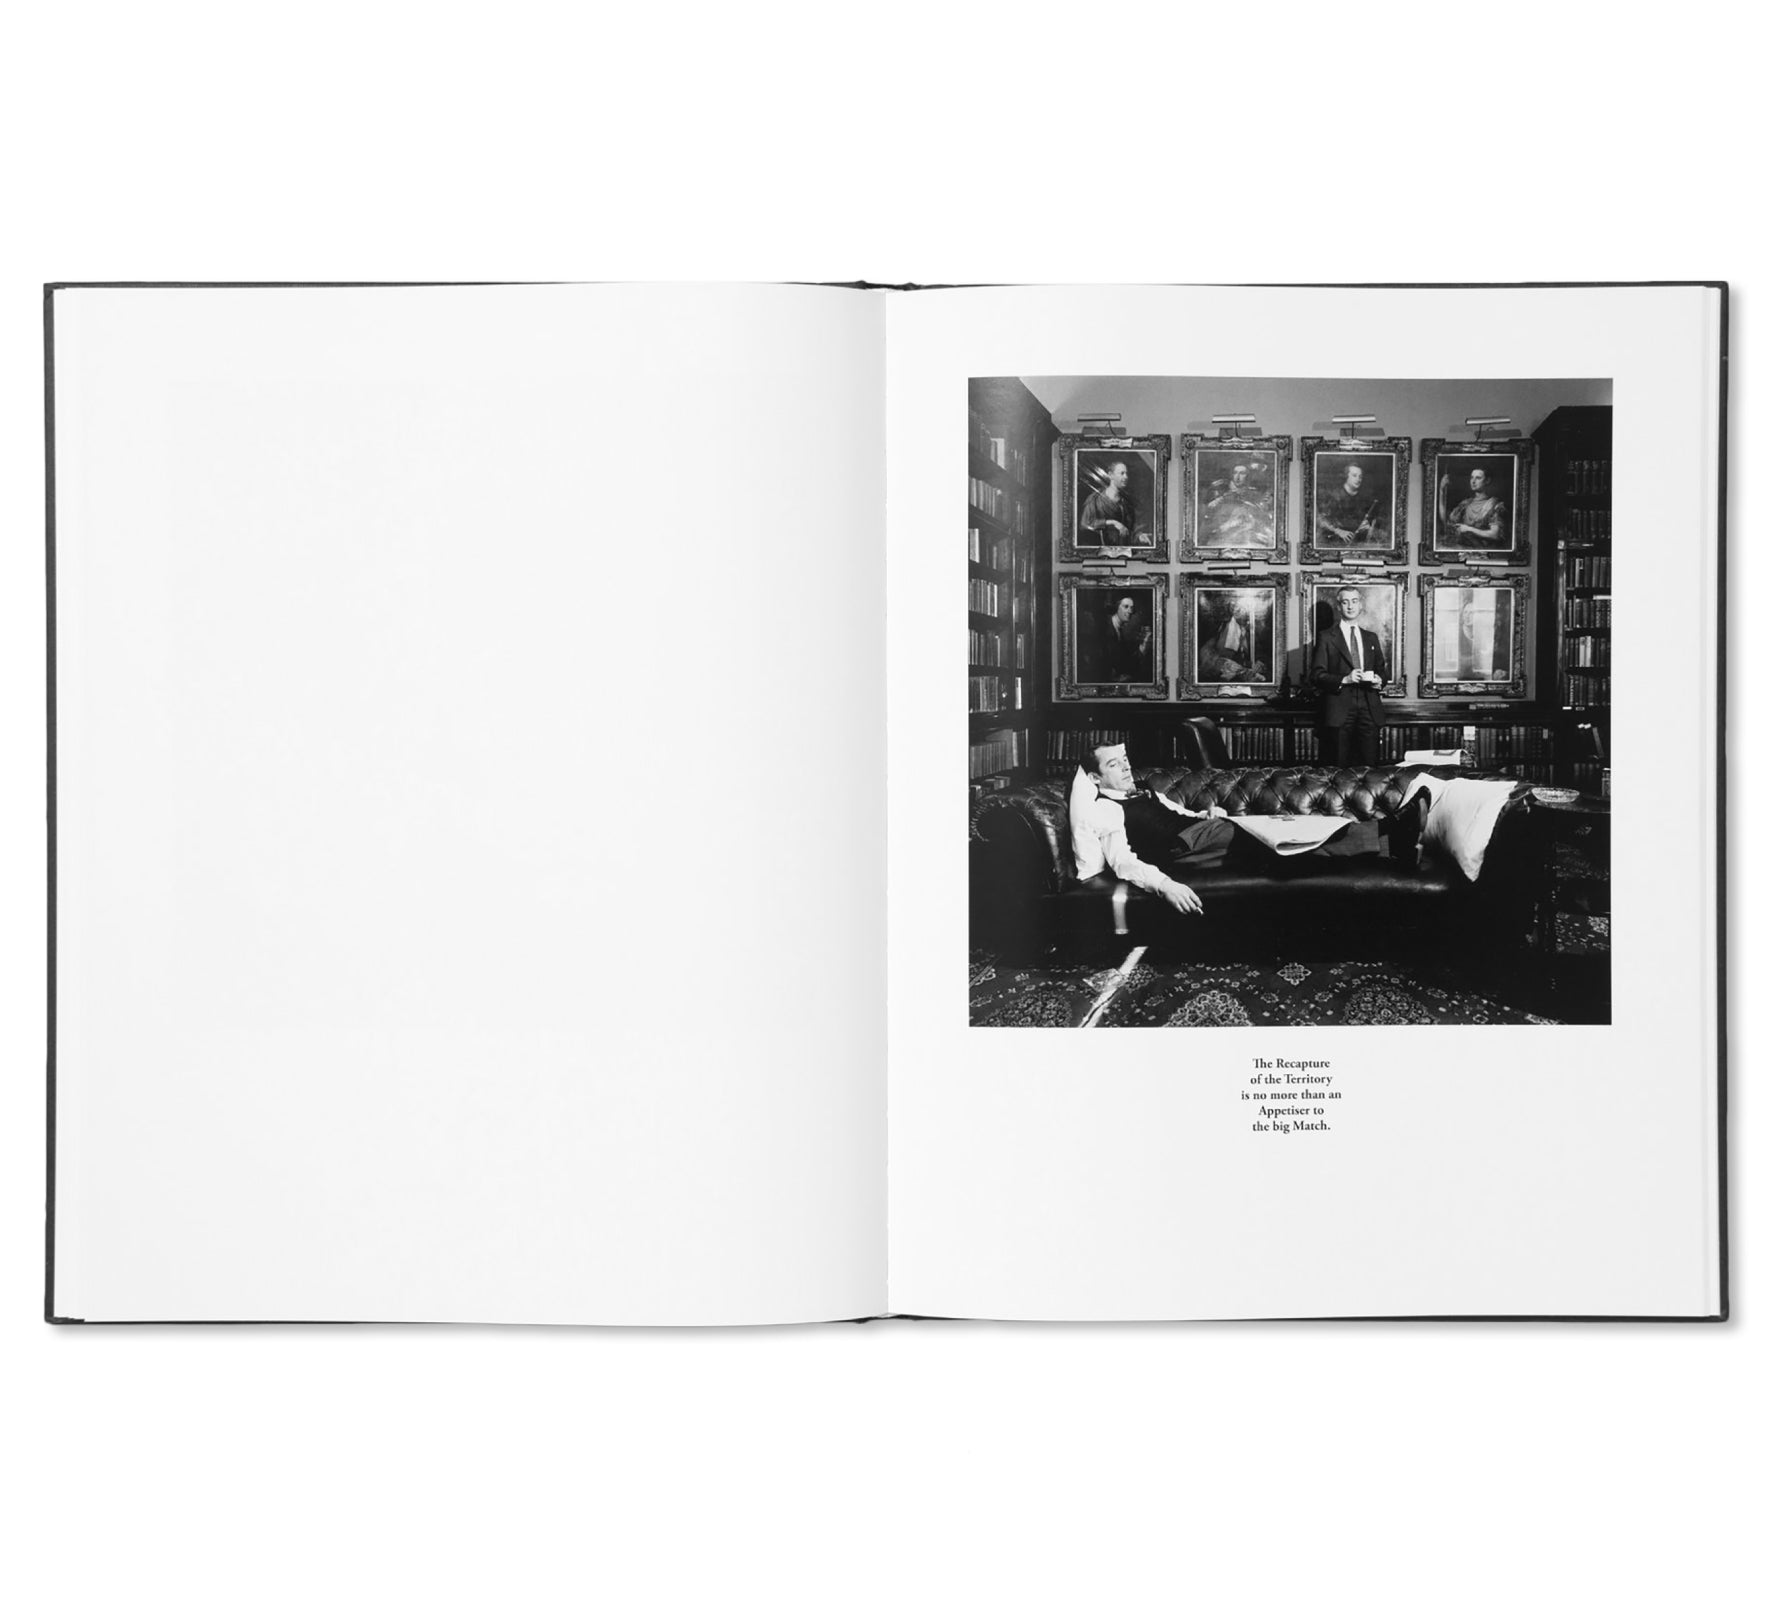 GENTLEMEN by Karen Knorr